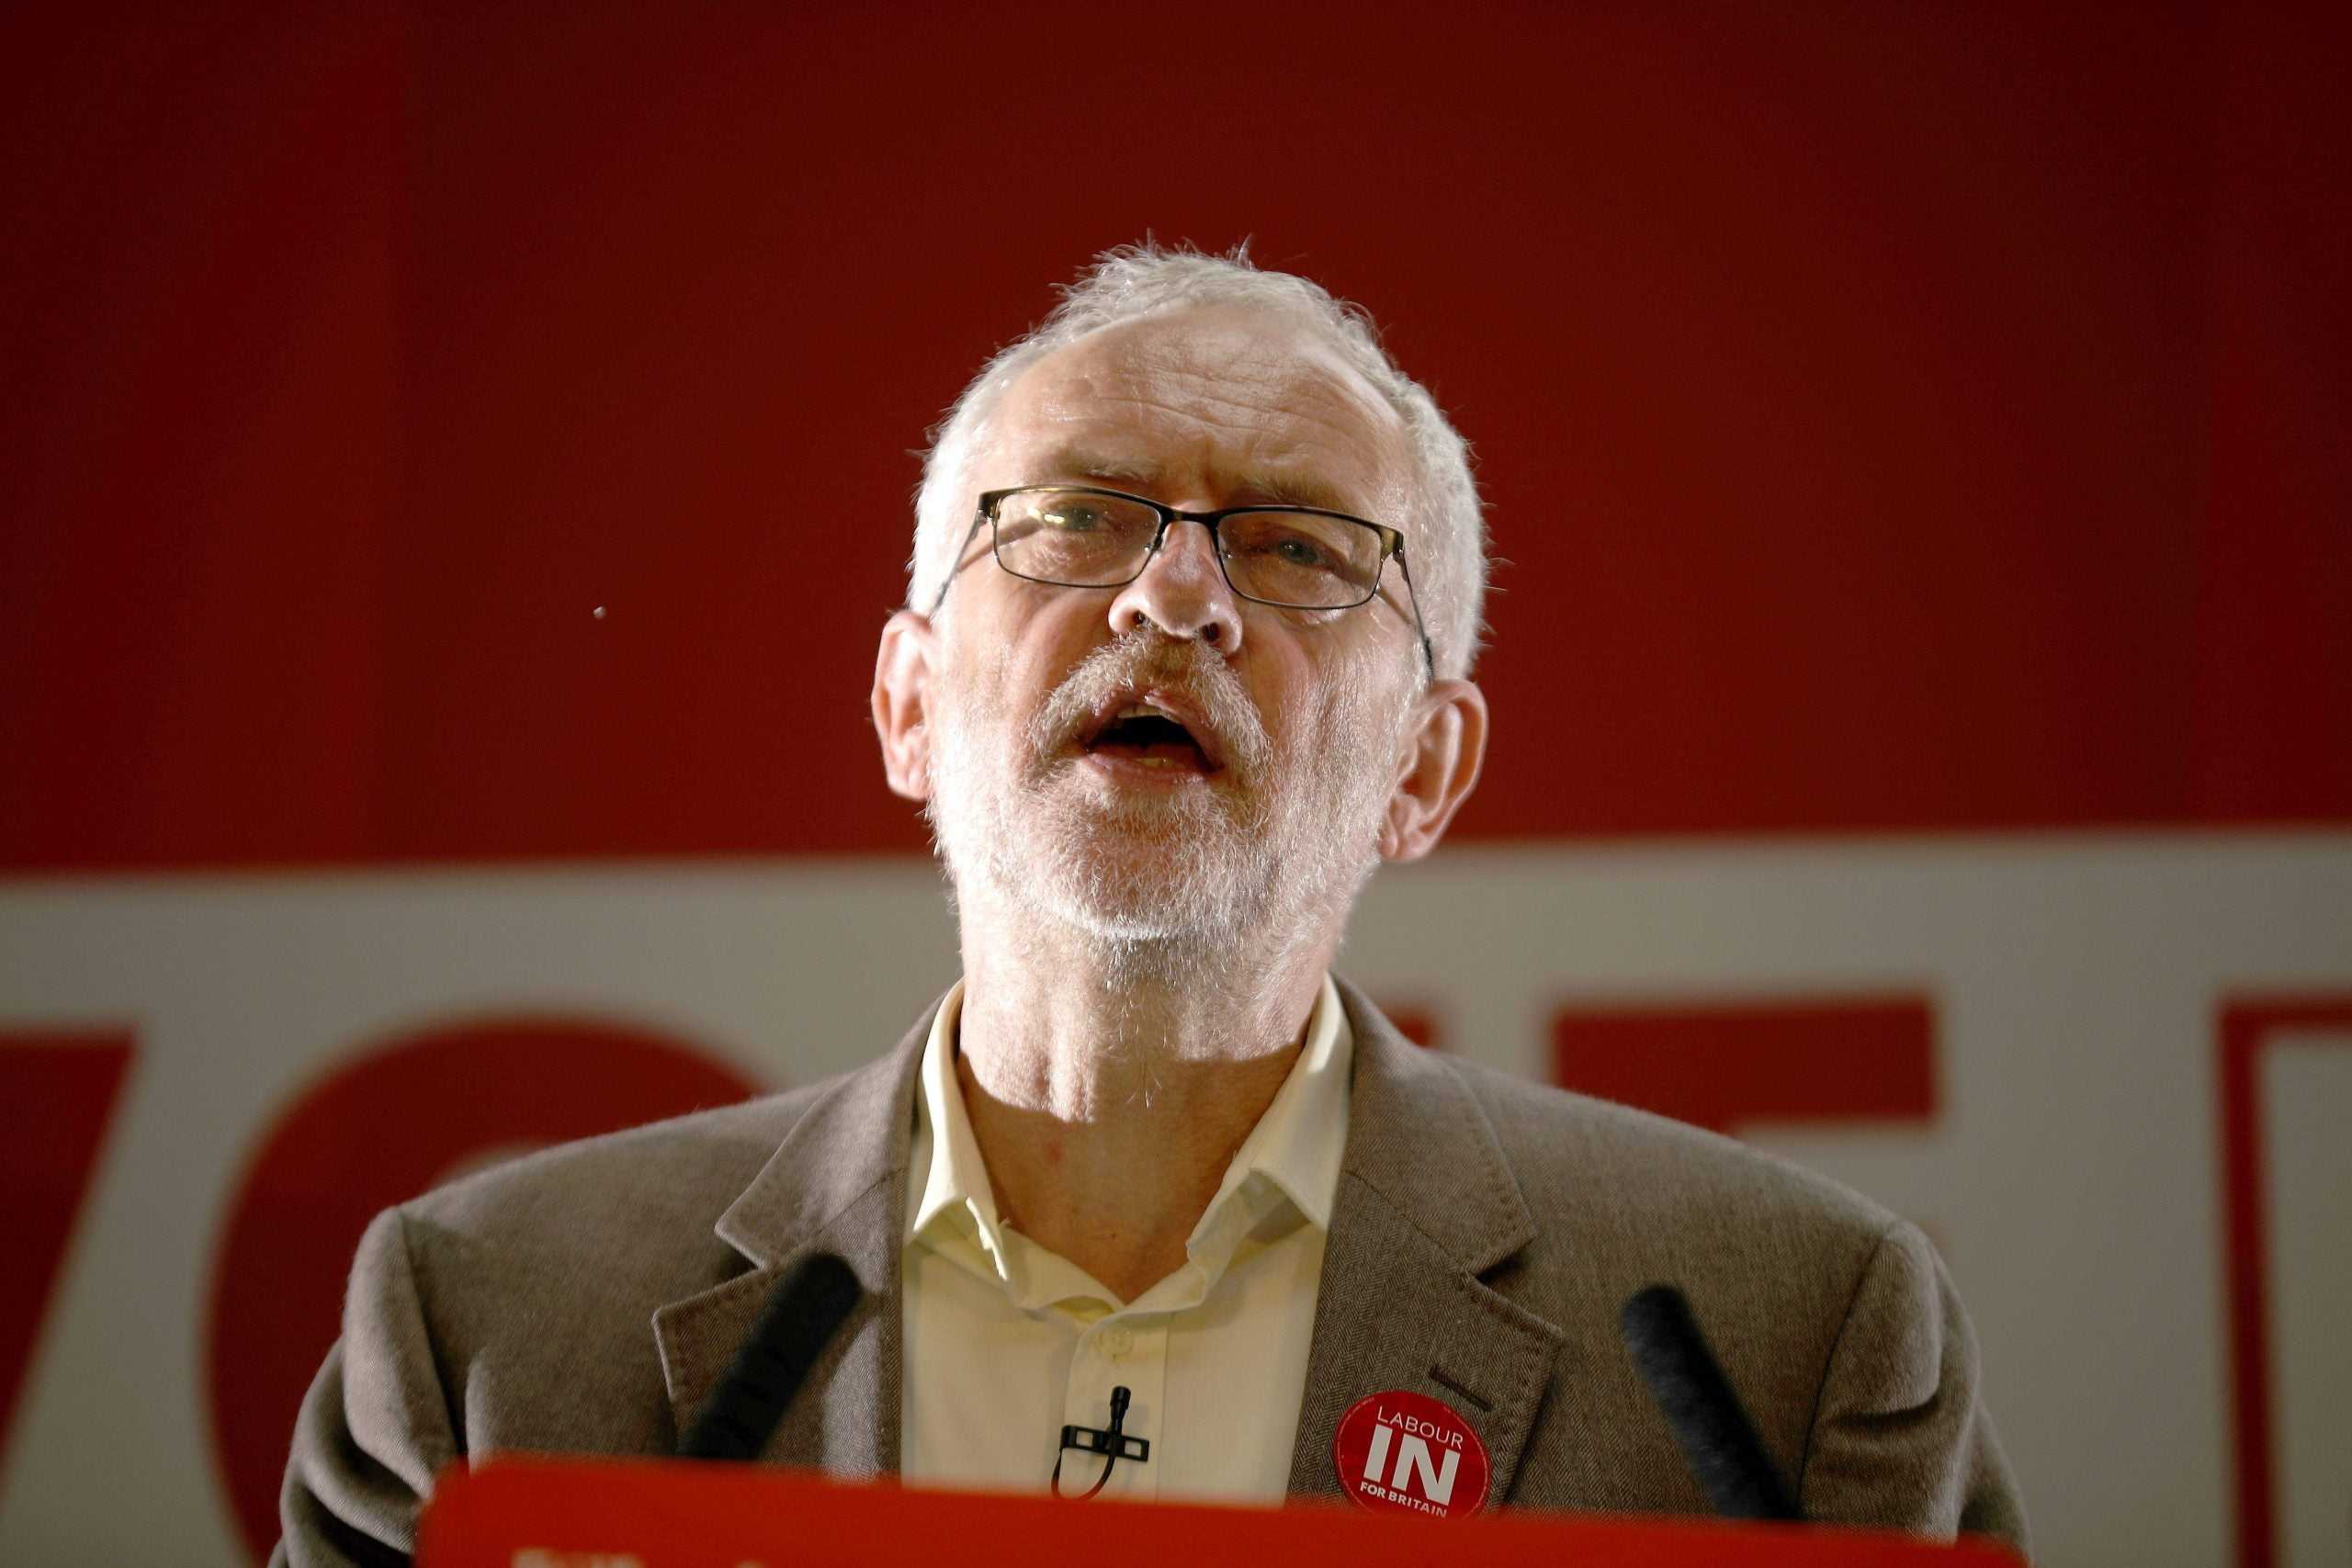 What we know about Labour's £3 supporters - and whether they'll help Jeremy Corbyn again